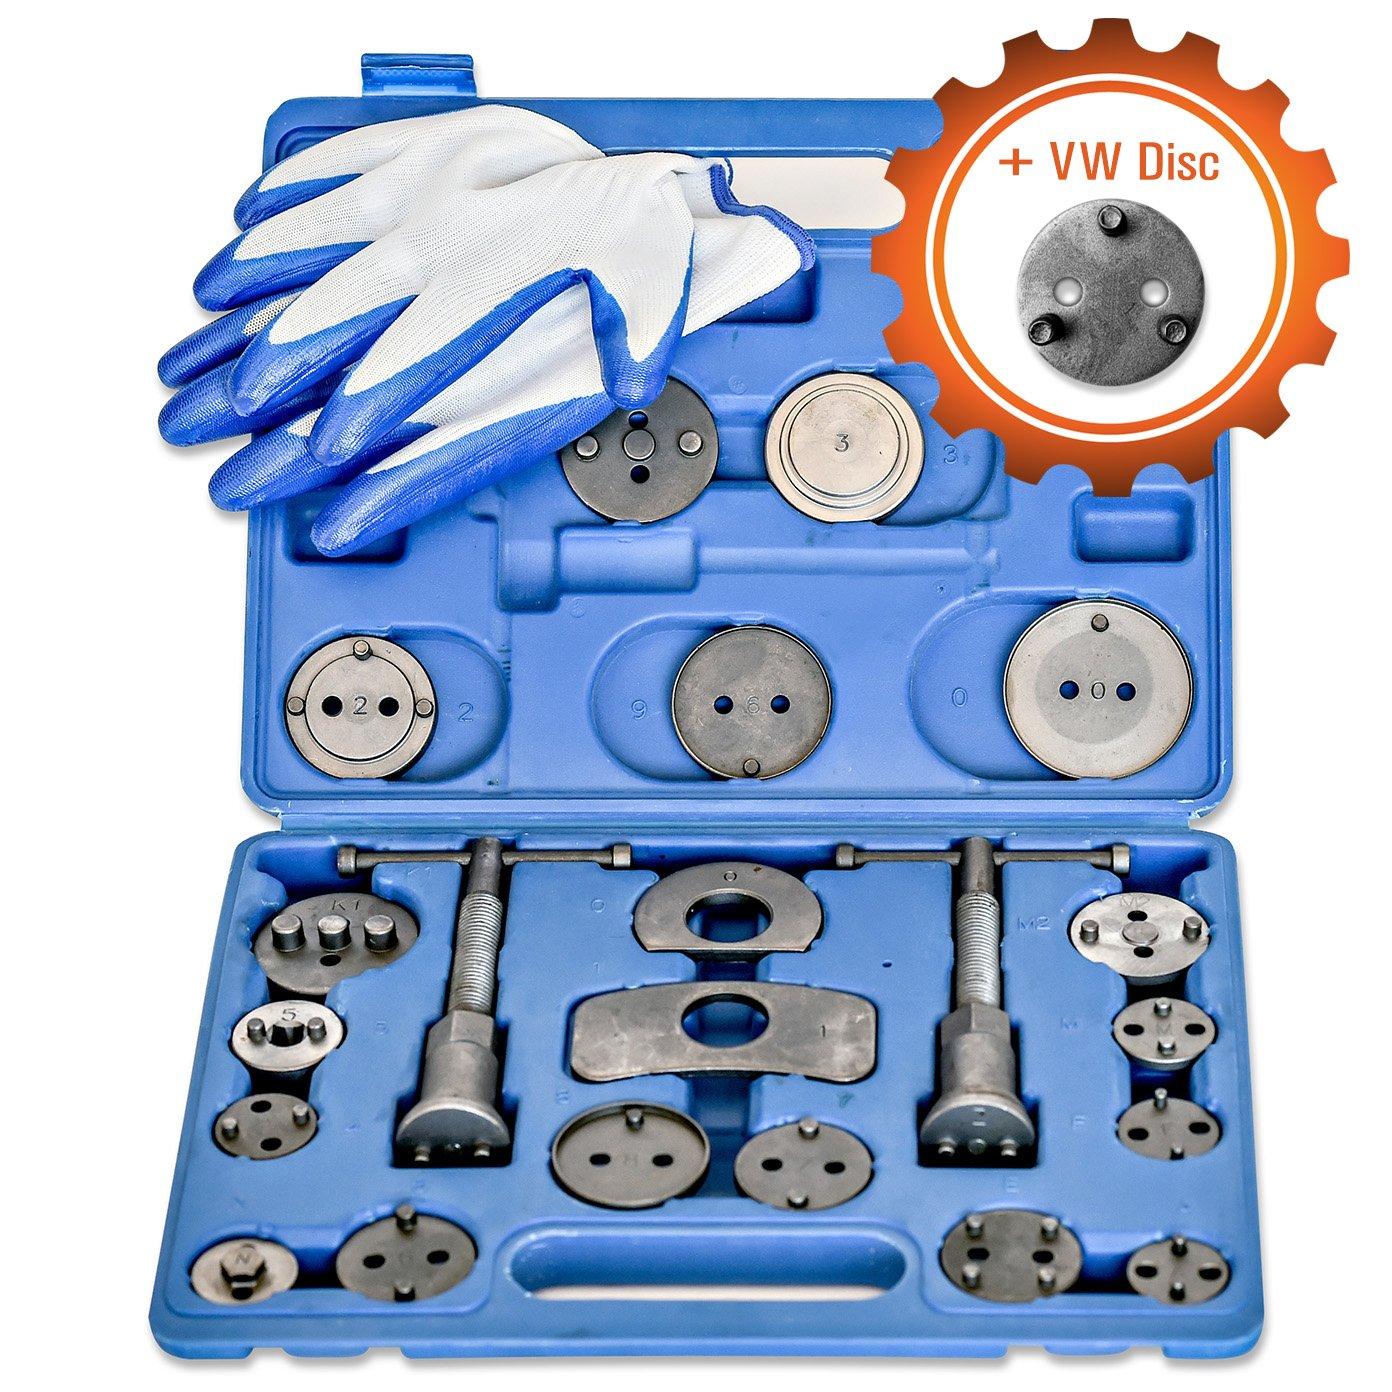 Grit Performance [24 Piece] Heavy Duty Disc Brake Caliper Tool Set and Wind Back Kit for Brake Pad Replacement   Fits Most American, European, Japanese Makes/Models